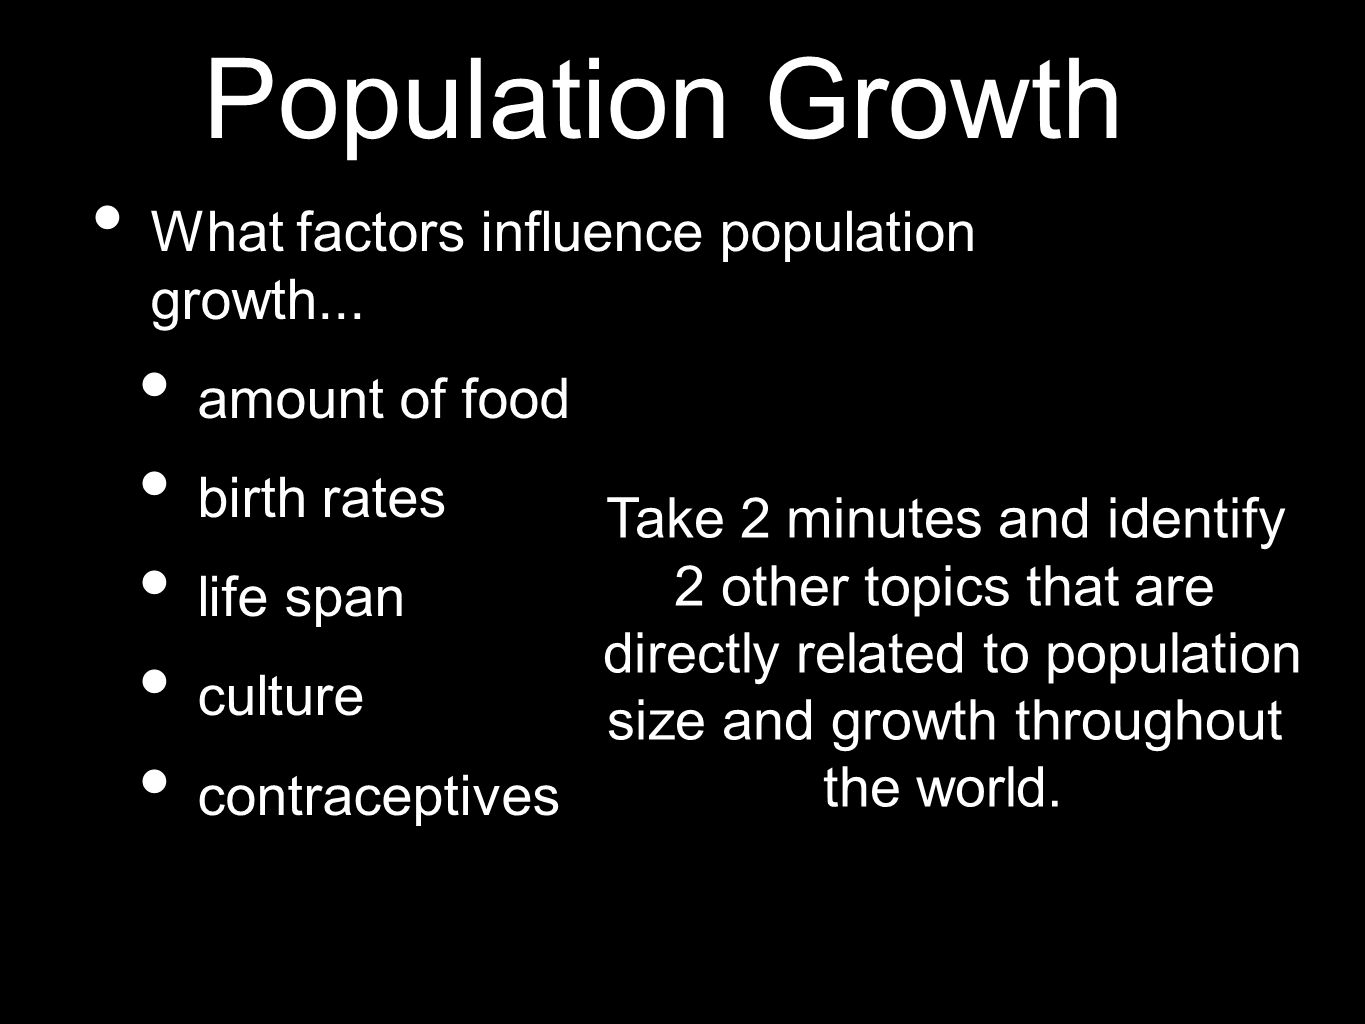 Population Growth What factors influence population growth...